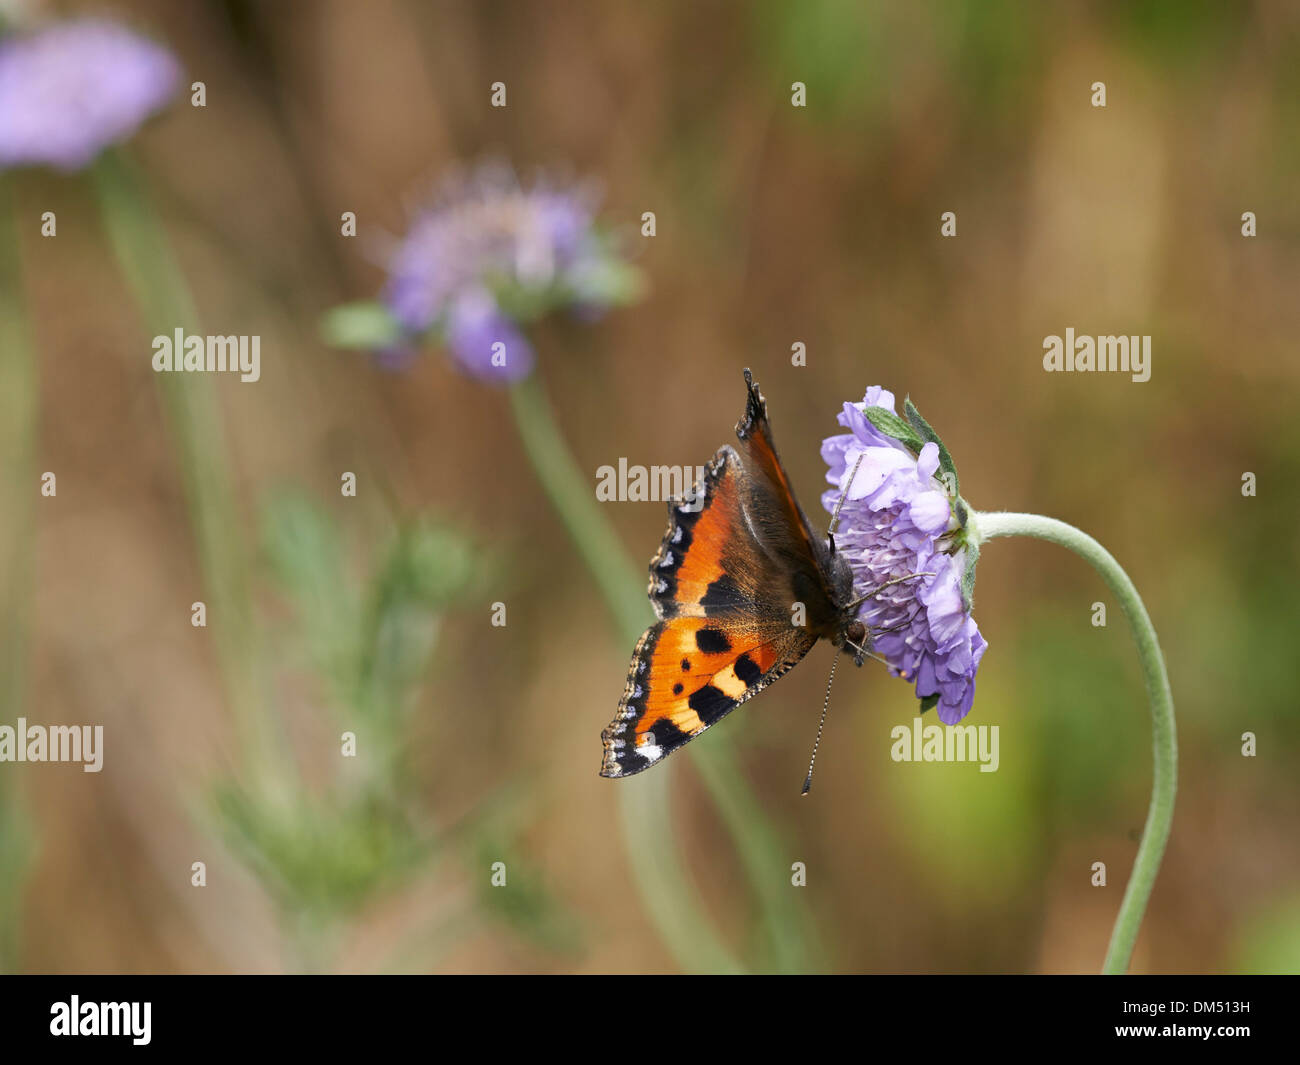 Small Tortoiseshell butterfly on Scabious flower. - Stock Image